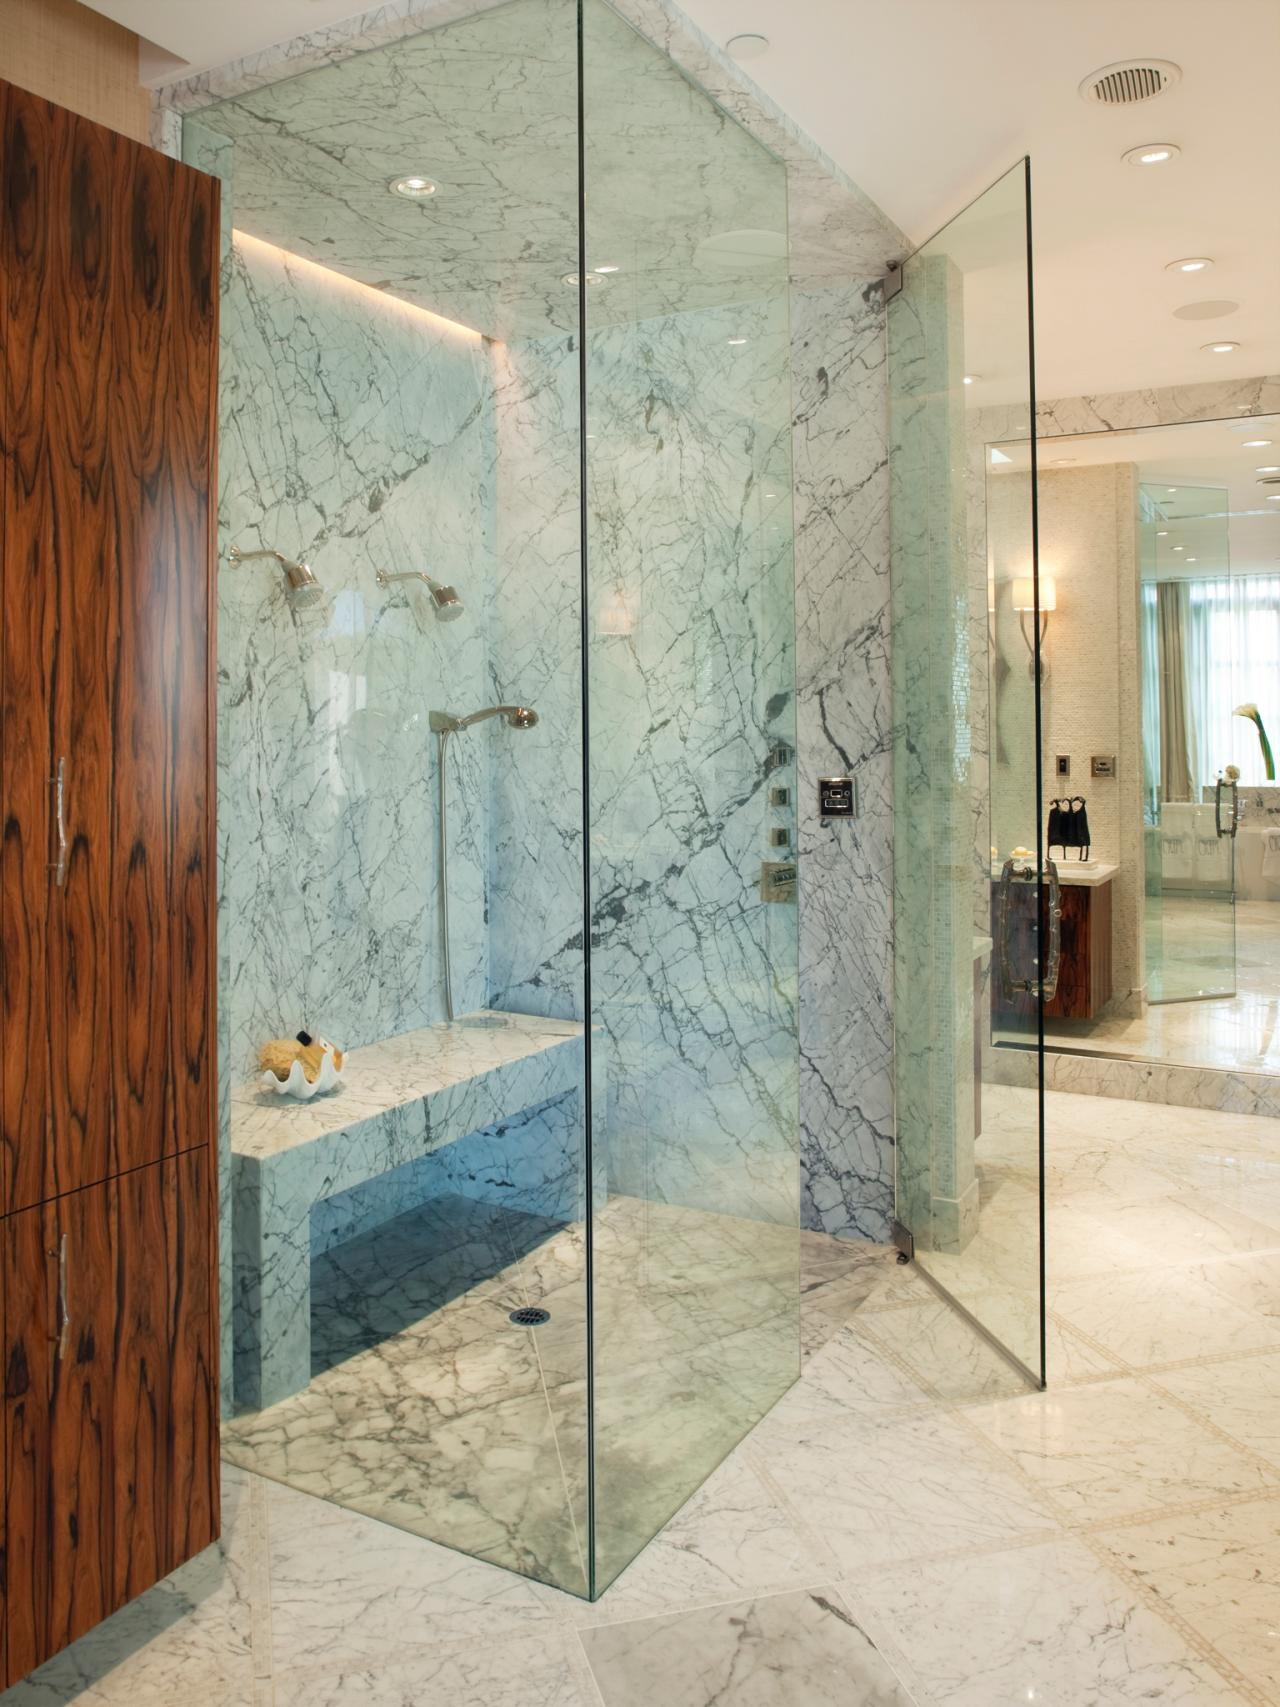 Benefits of Glass Enclosed Showers | HomesFeed